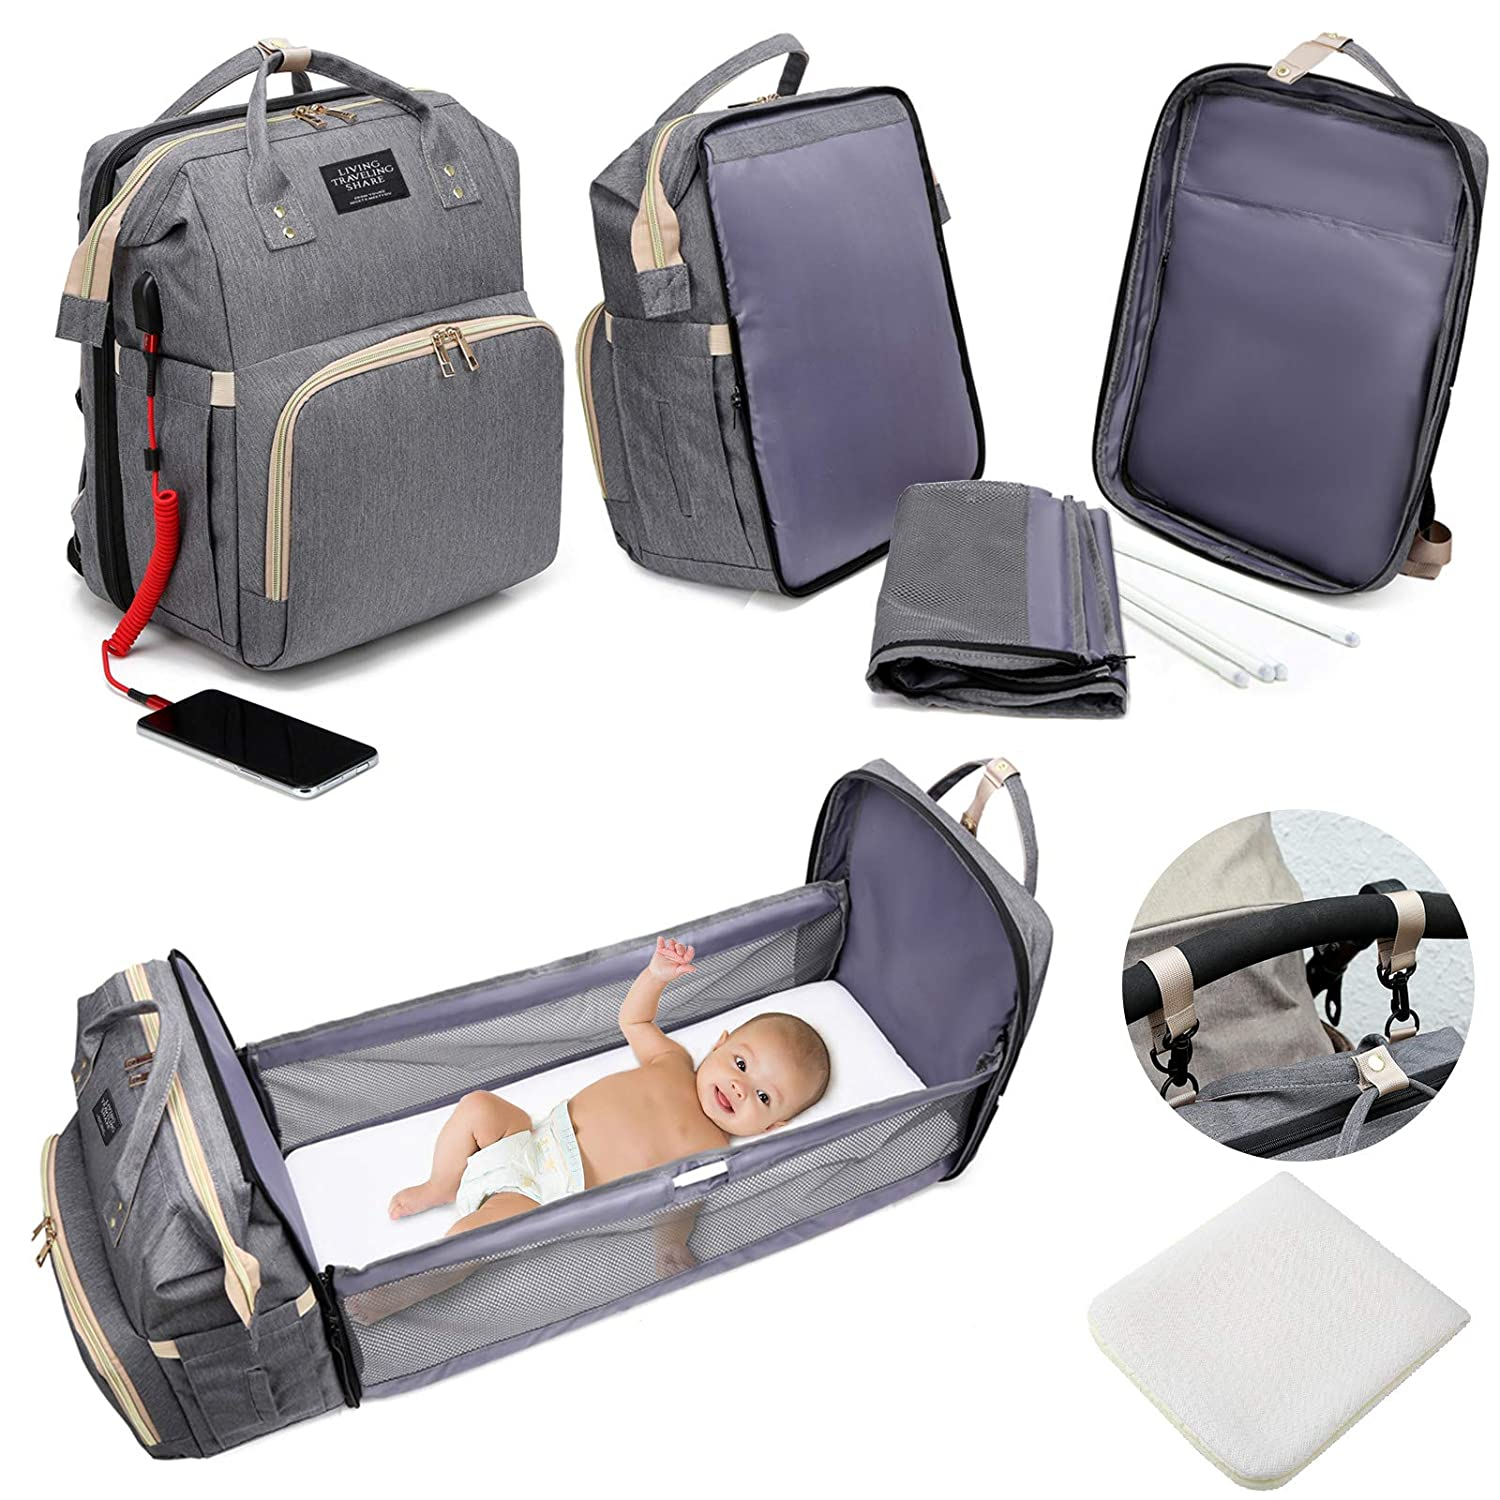 Diaper Bag Backpack with Changing Station,5 in 1 Travel Foldable Baby Diaper Bag,Mommy Bag Diaper Bag Changing Station Multi-Function Waterproof with Mattress and USB Charging Port (Grey)